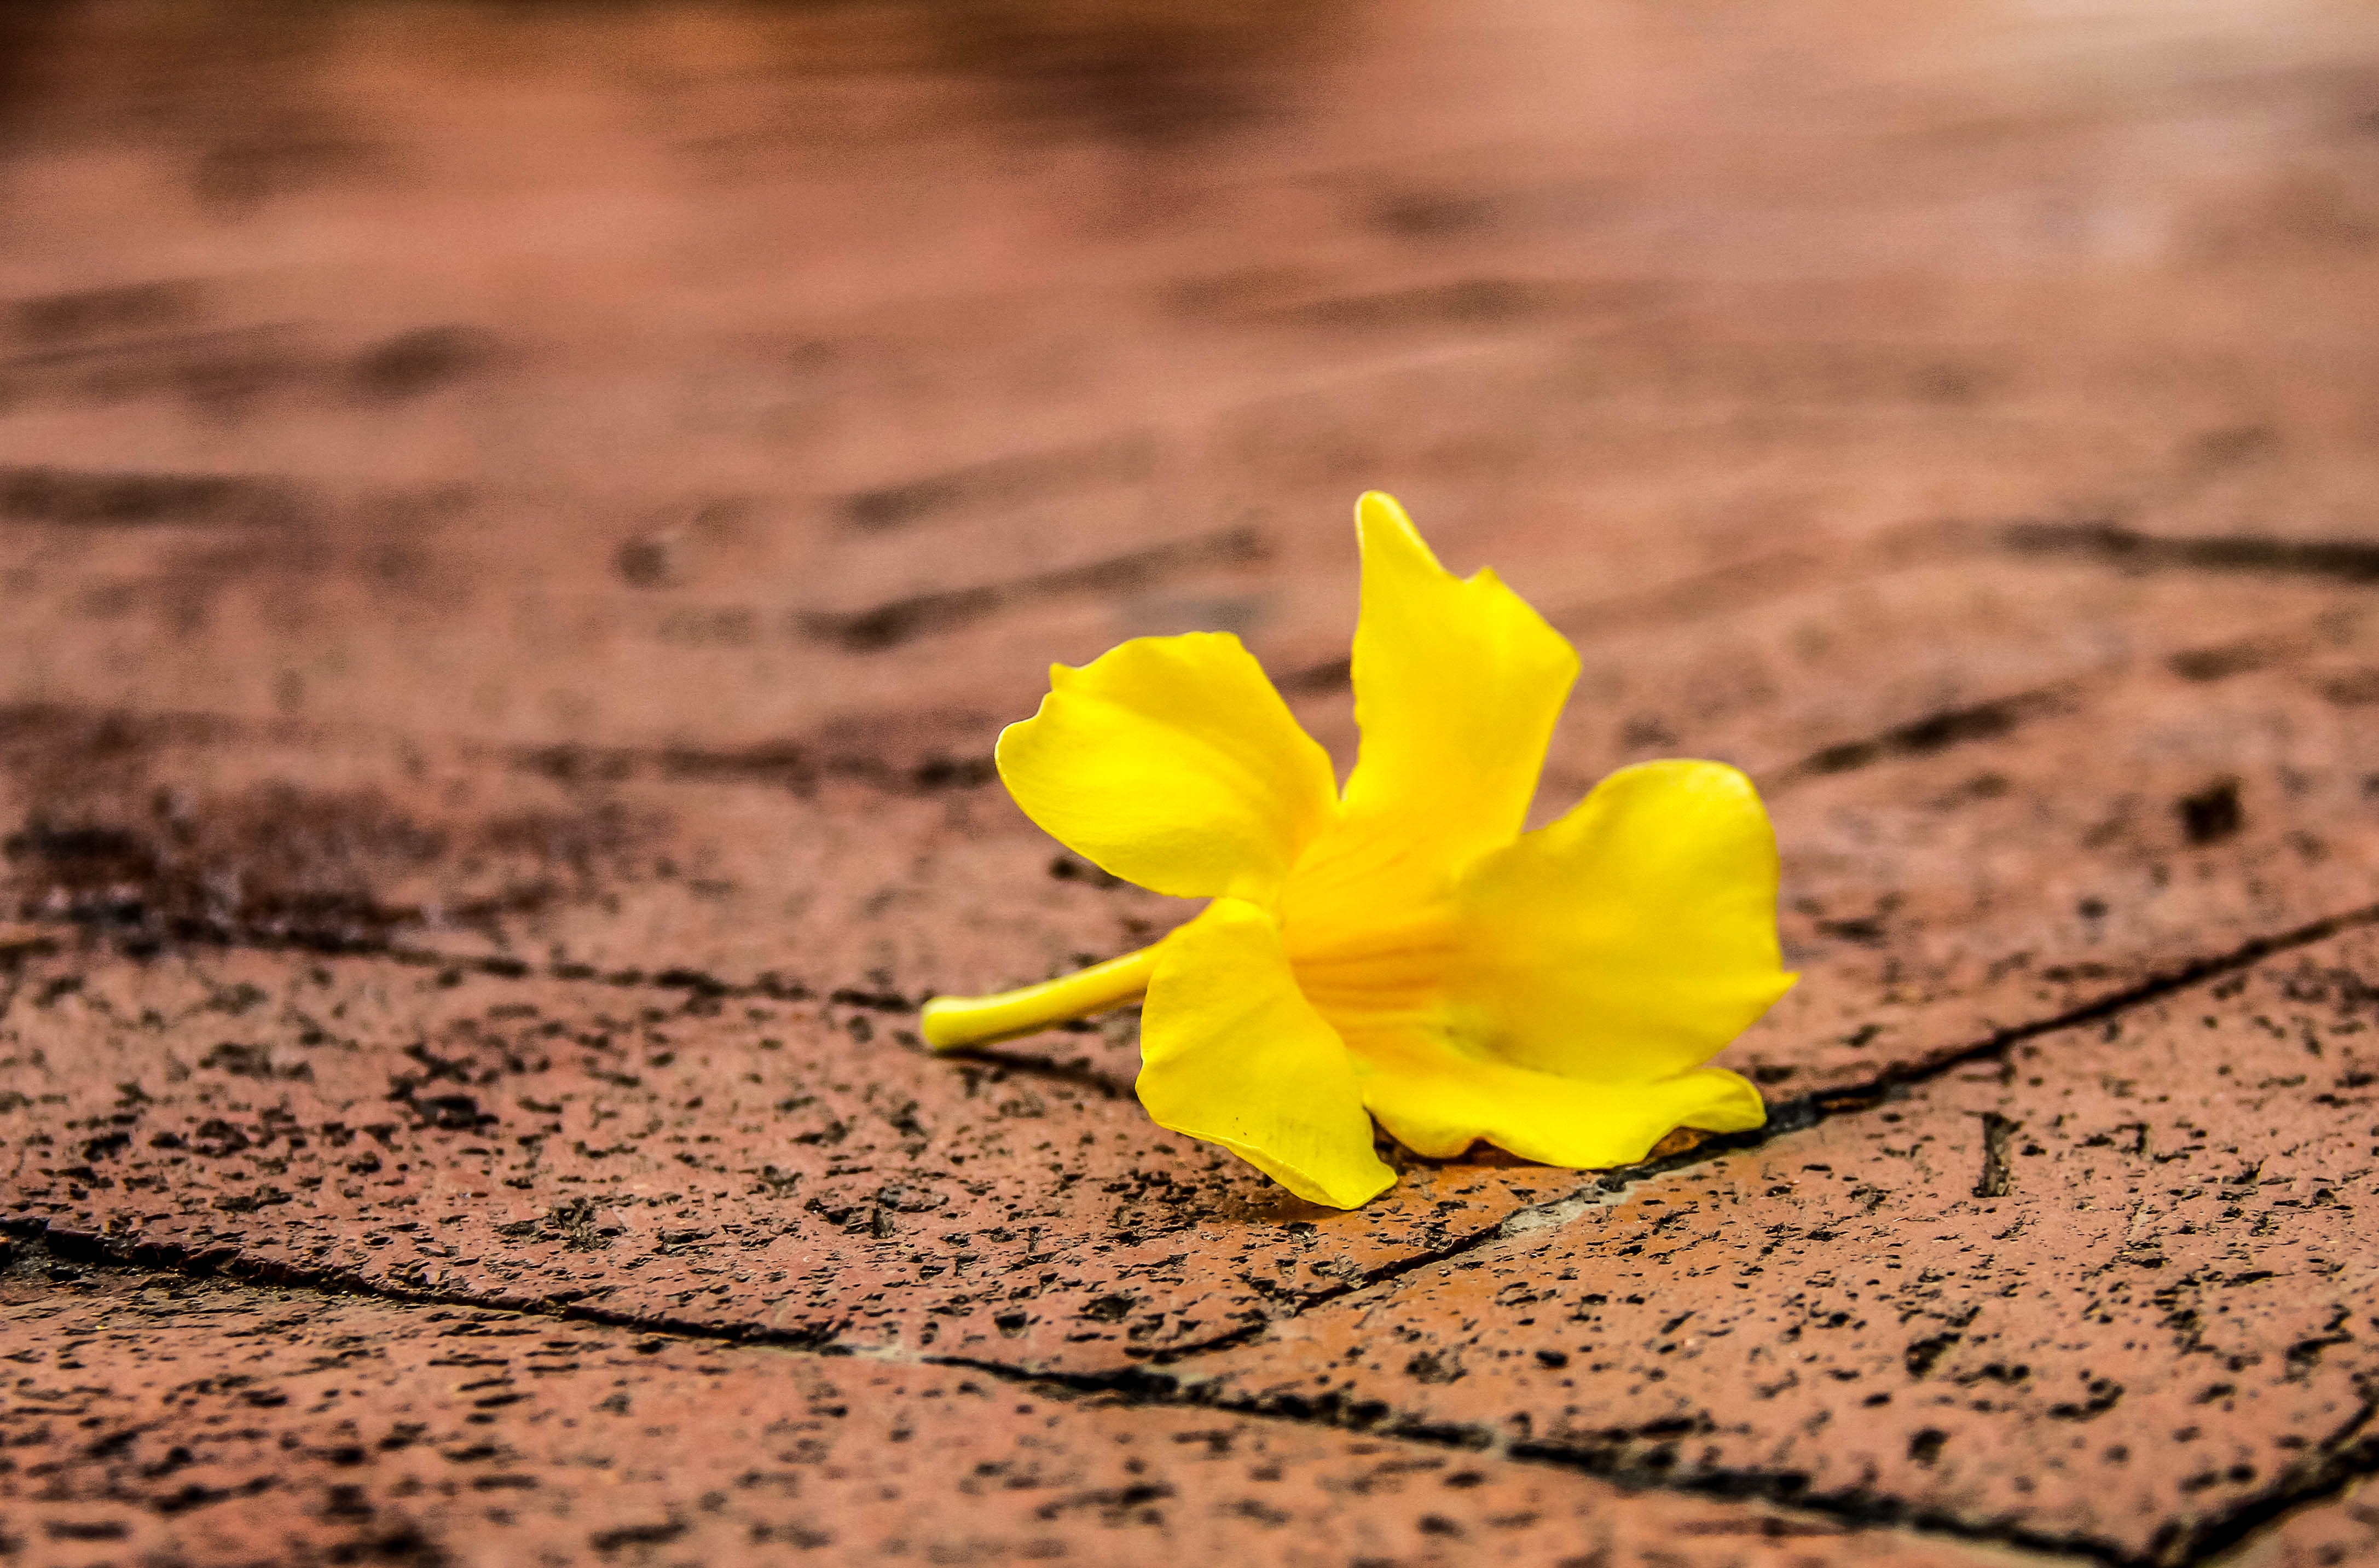 yellow petaled flower on gray brick floor